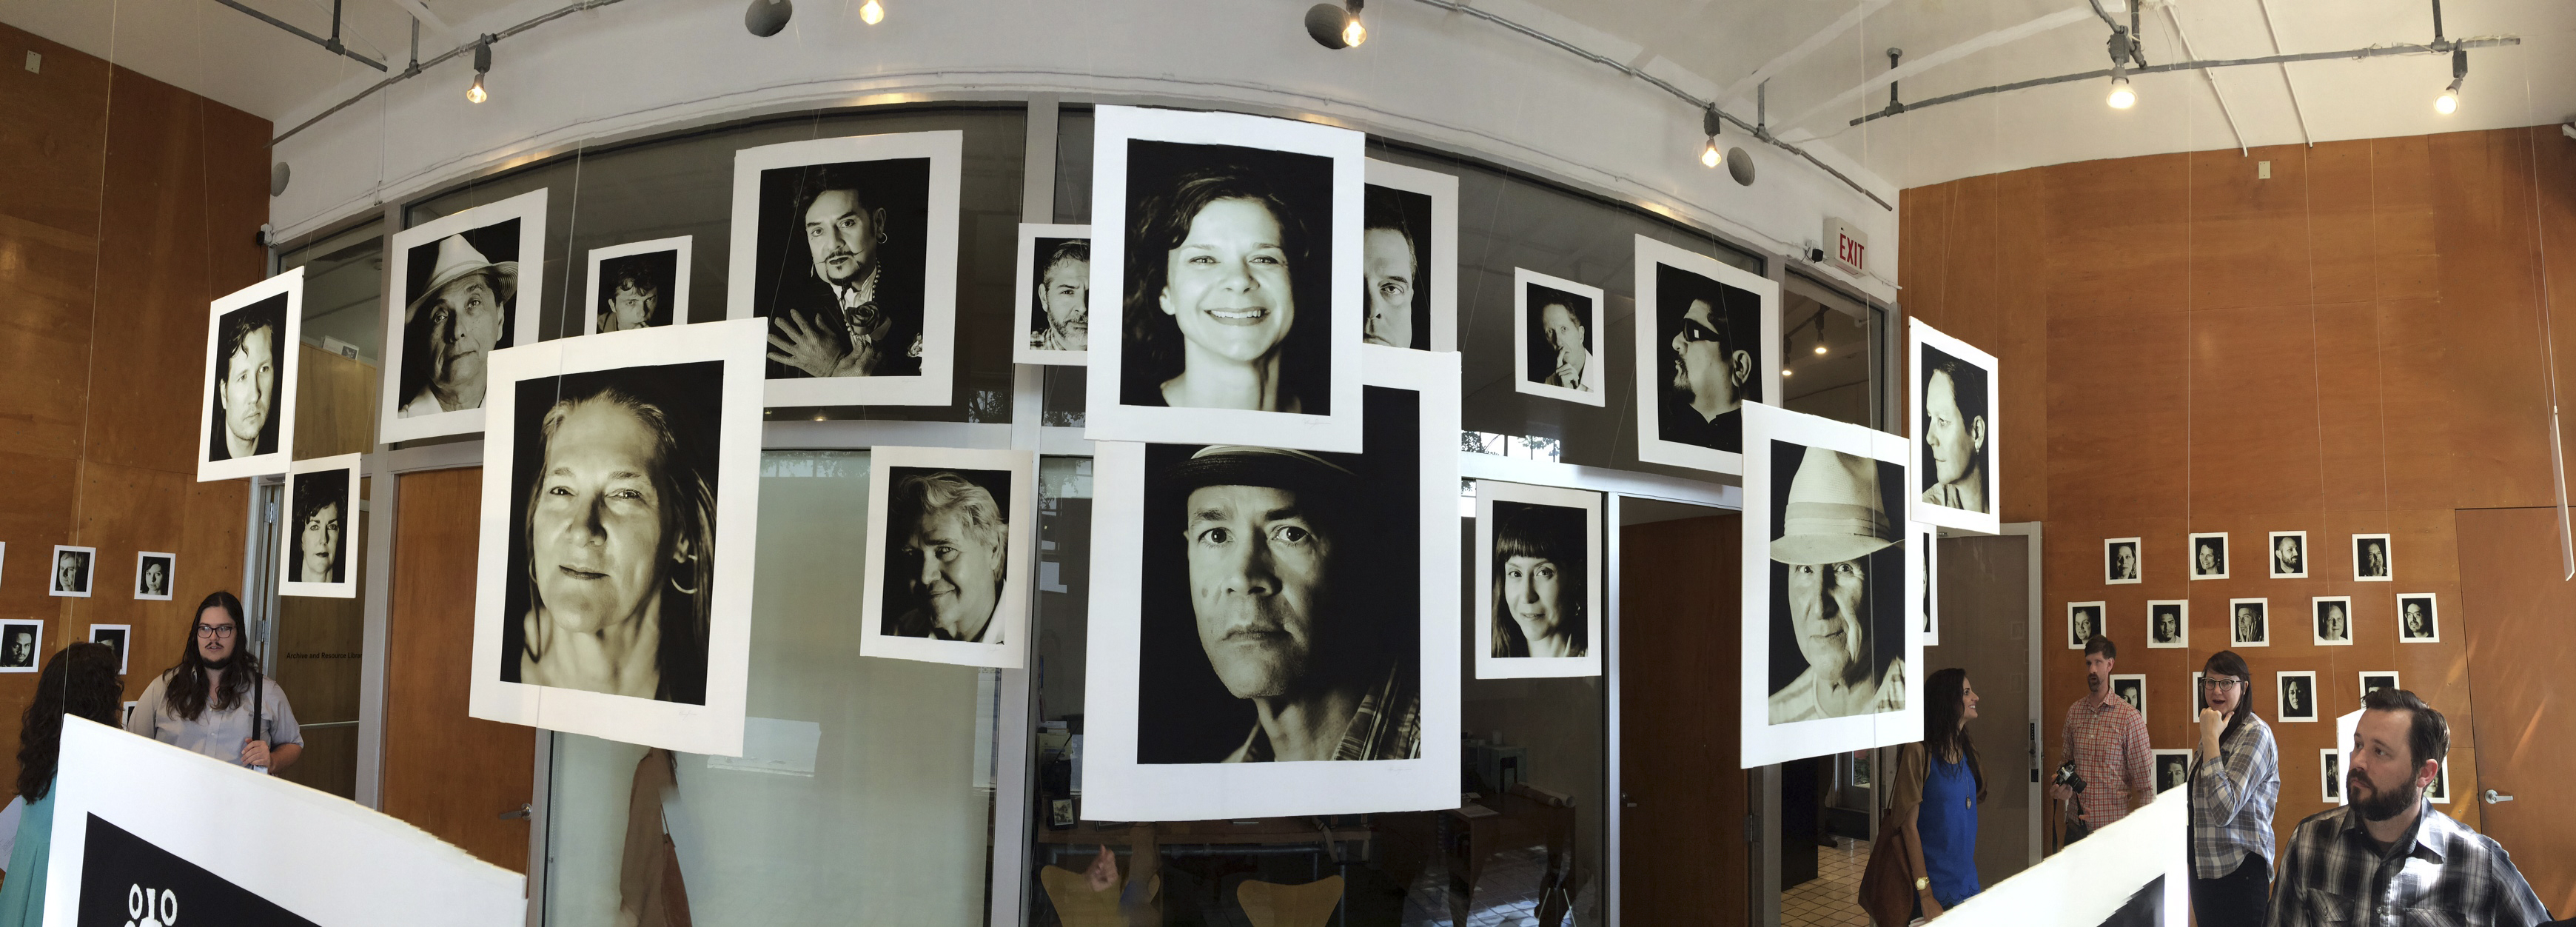 Faces of Artpace, 2016, panoramic view of installation at Artpace Window Works